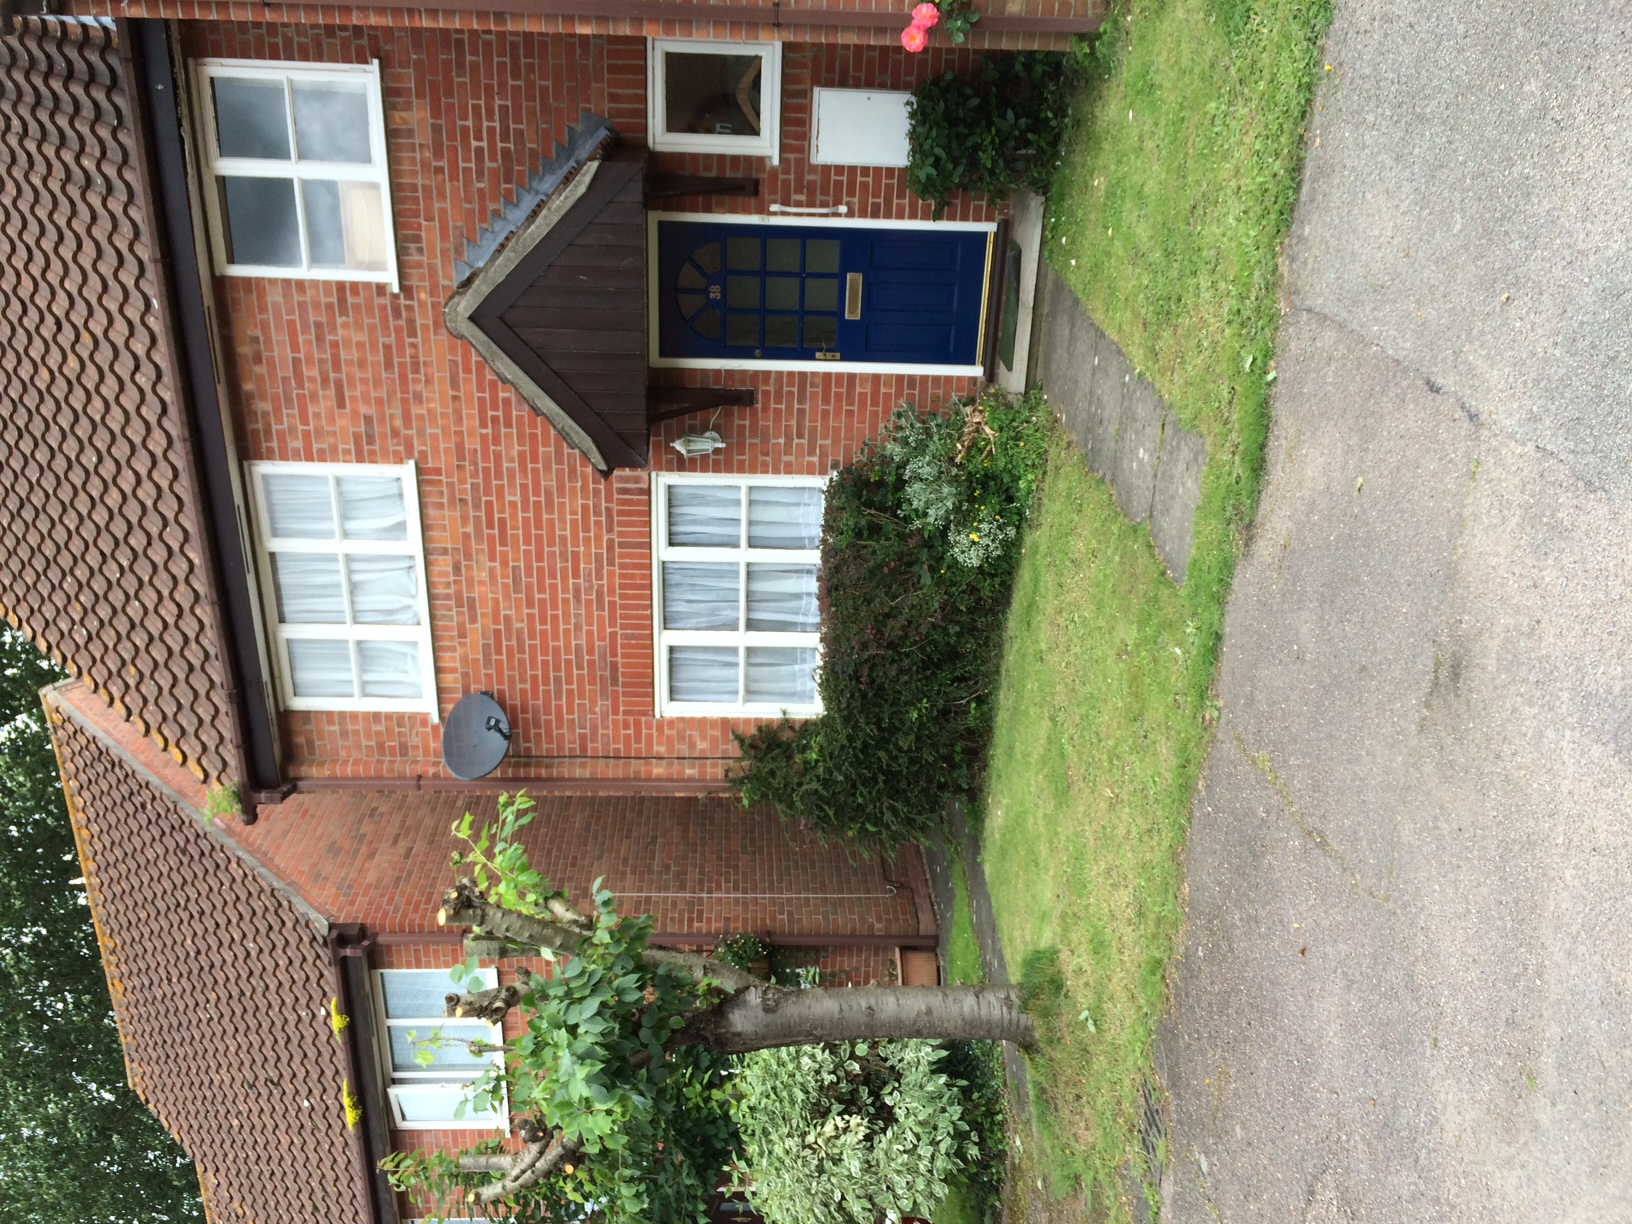 3 Bedroom Property Wymondham